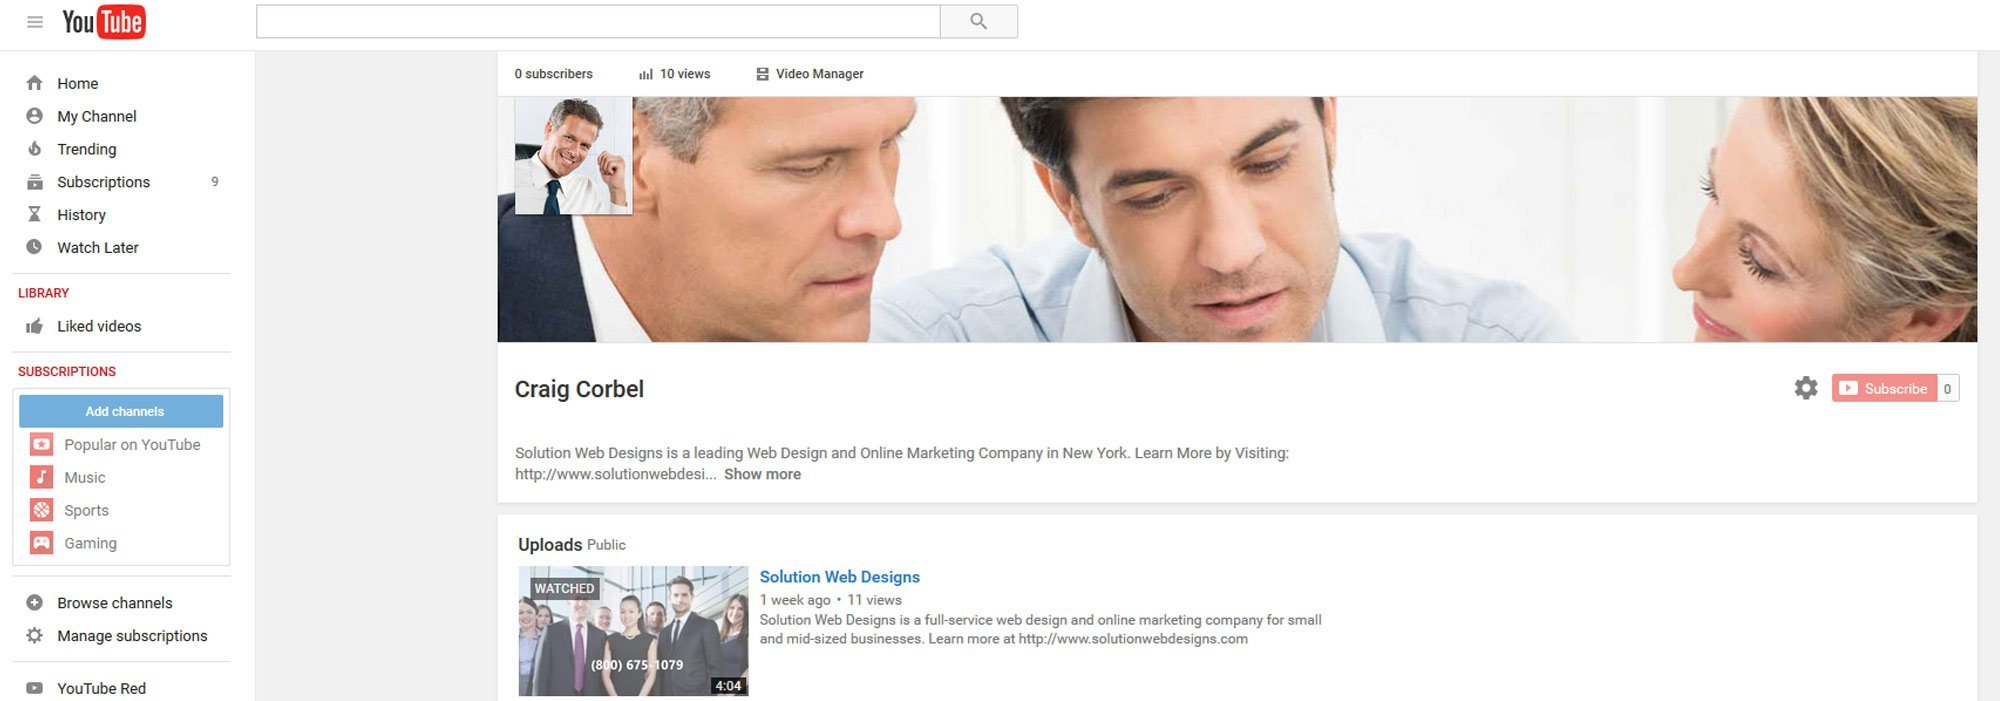 YouTube Marketing Agency Solution Web Designs